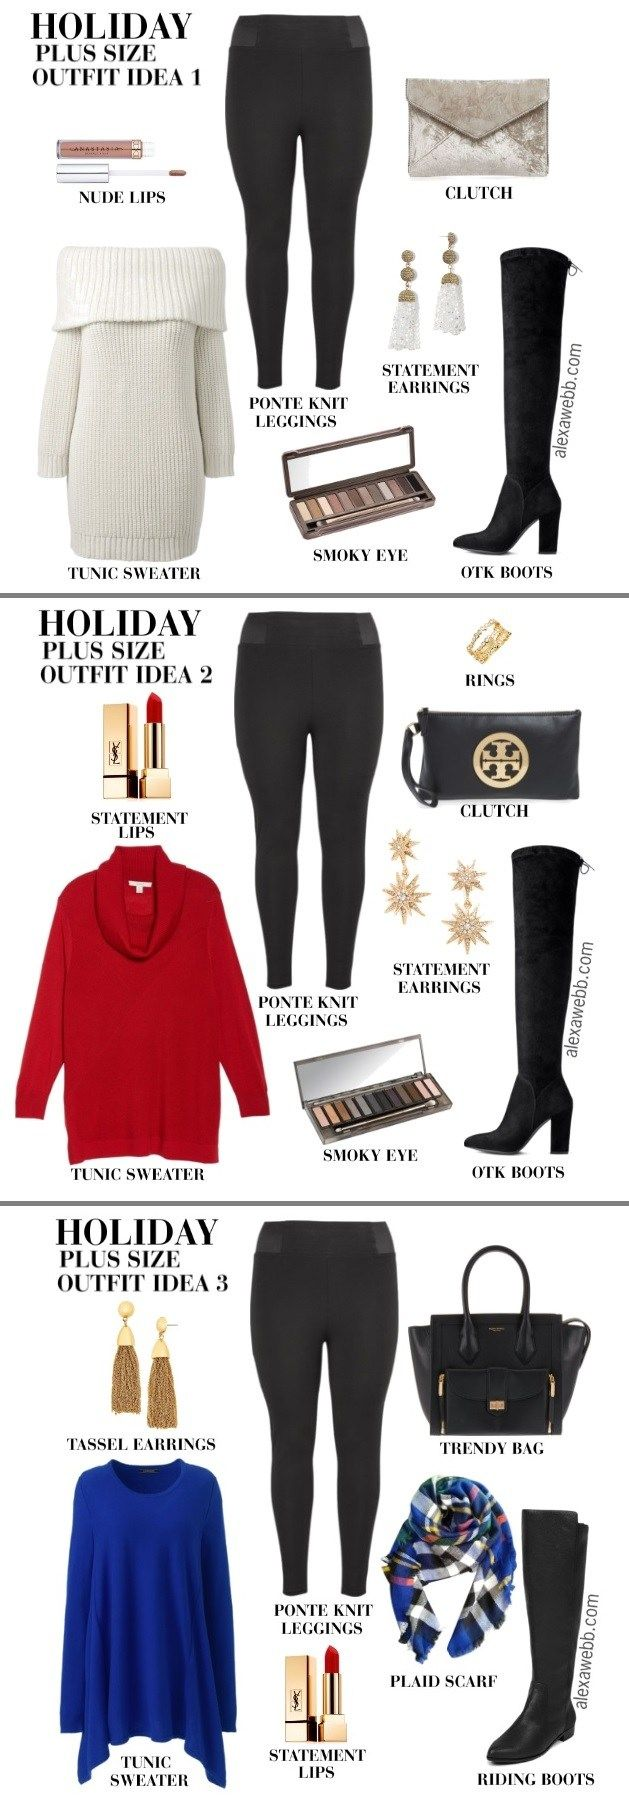 Plus Size Christmas Day Outfit Ideas - Plus Size Holiday Outfit Ideas - Plus Size Fashion for Women - alexawebb.com #alexawebb #plussize #christmasoutfit #outfit